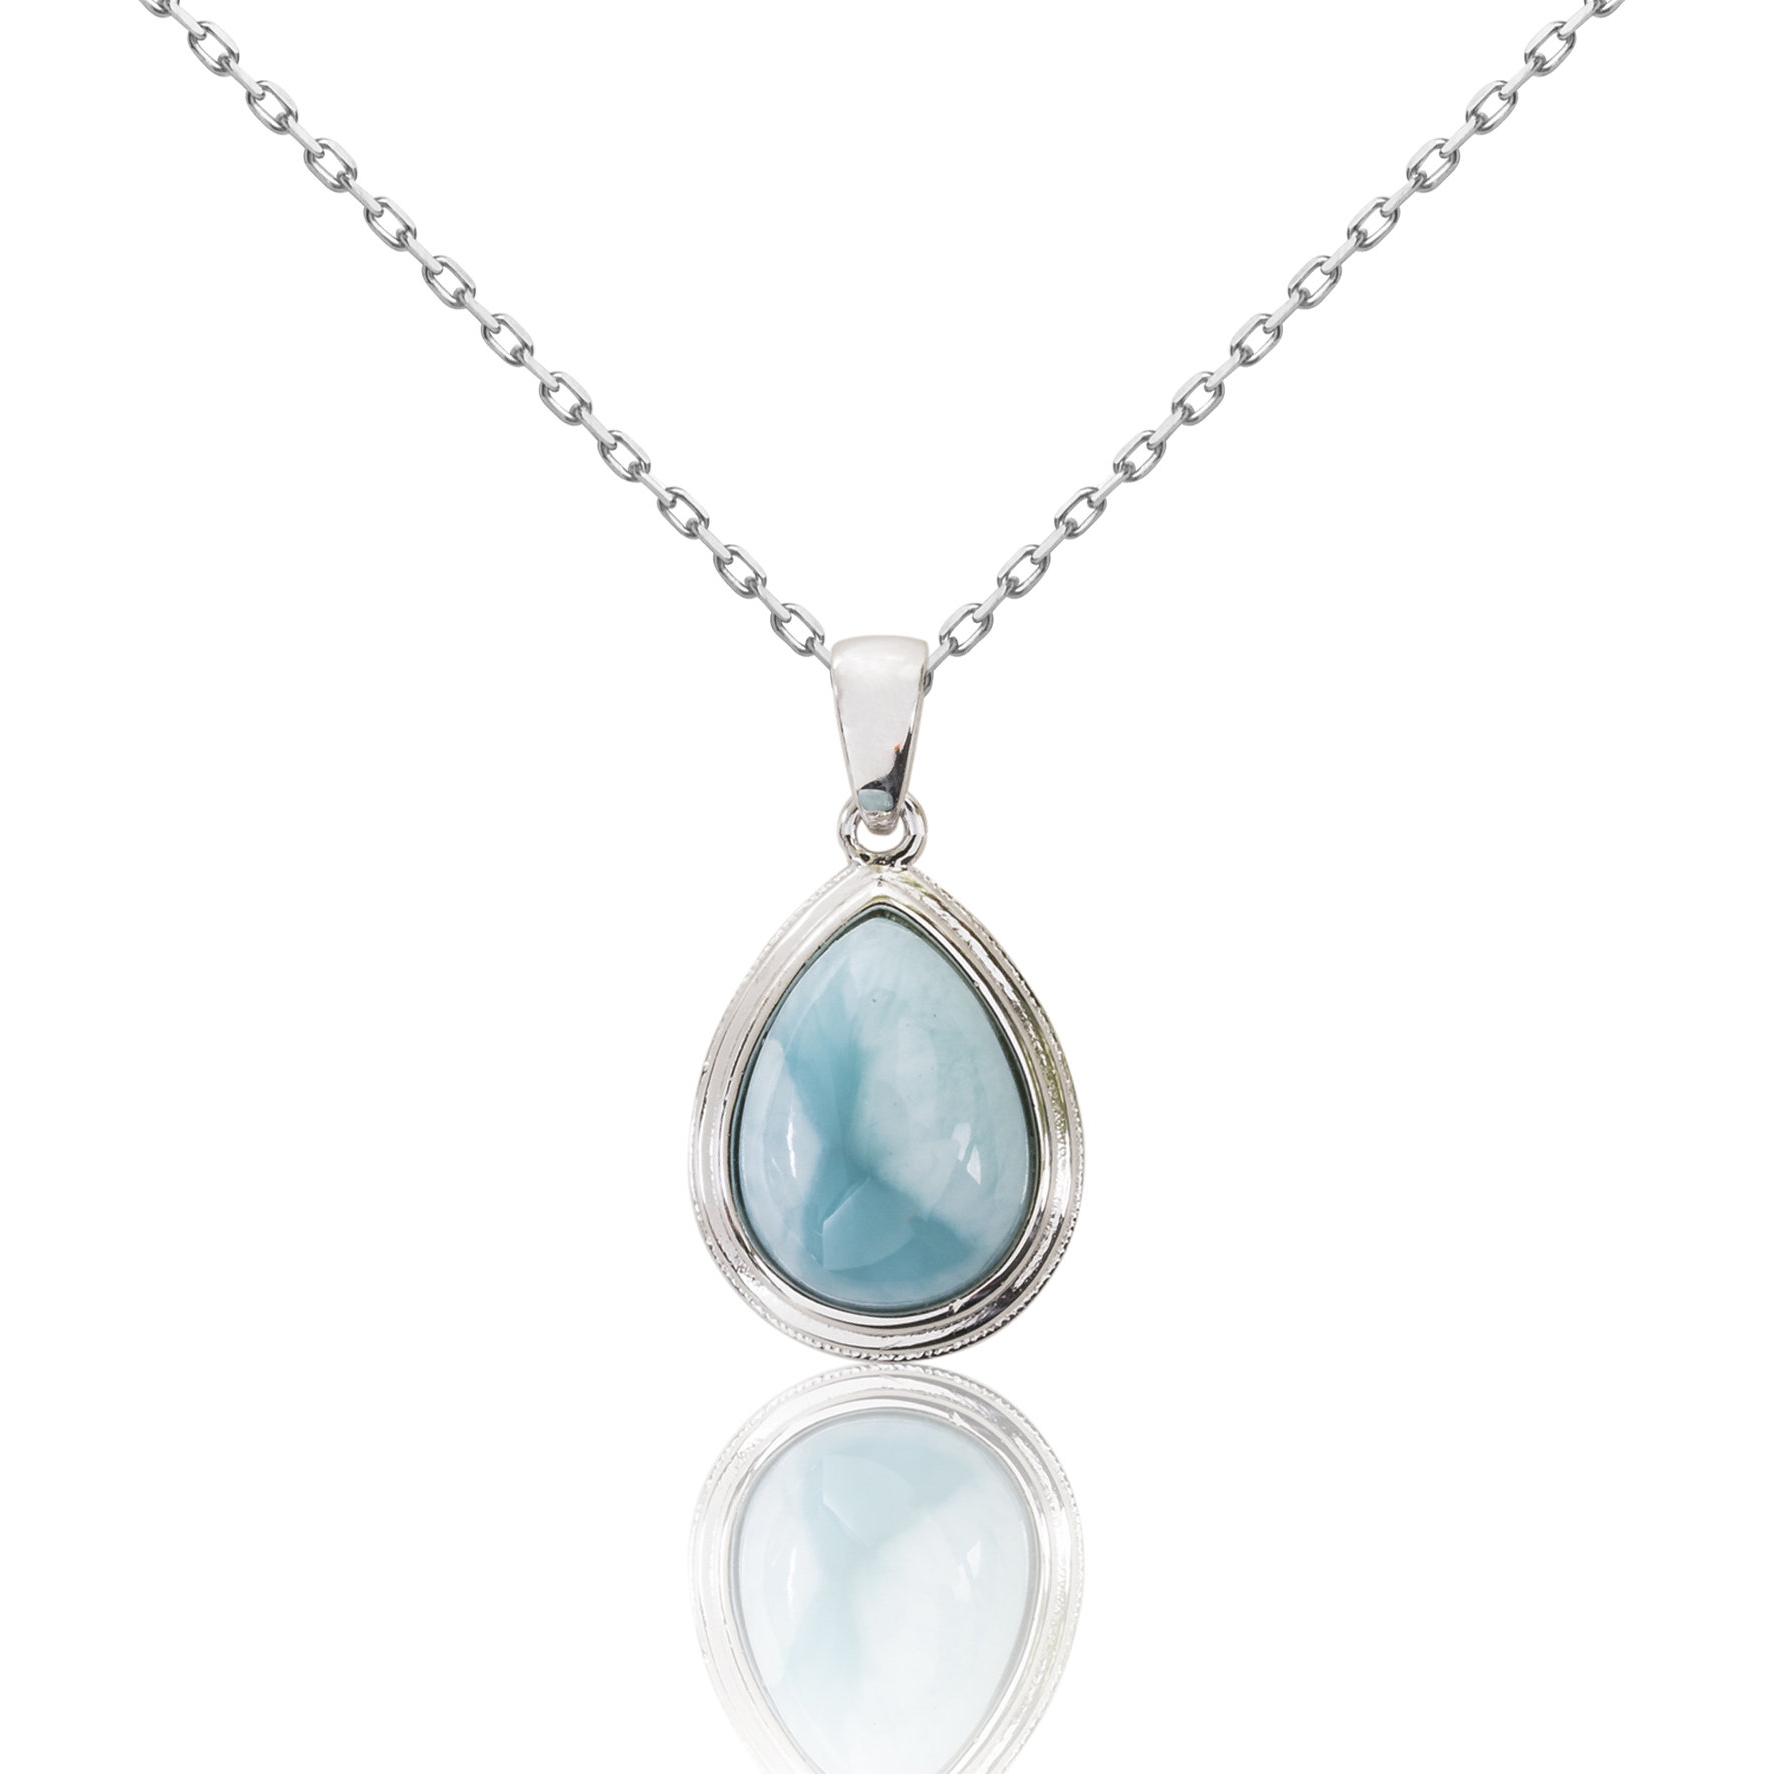 LIP1013 - tear drop pendant-chained.jpg